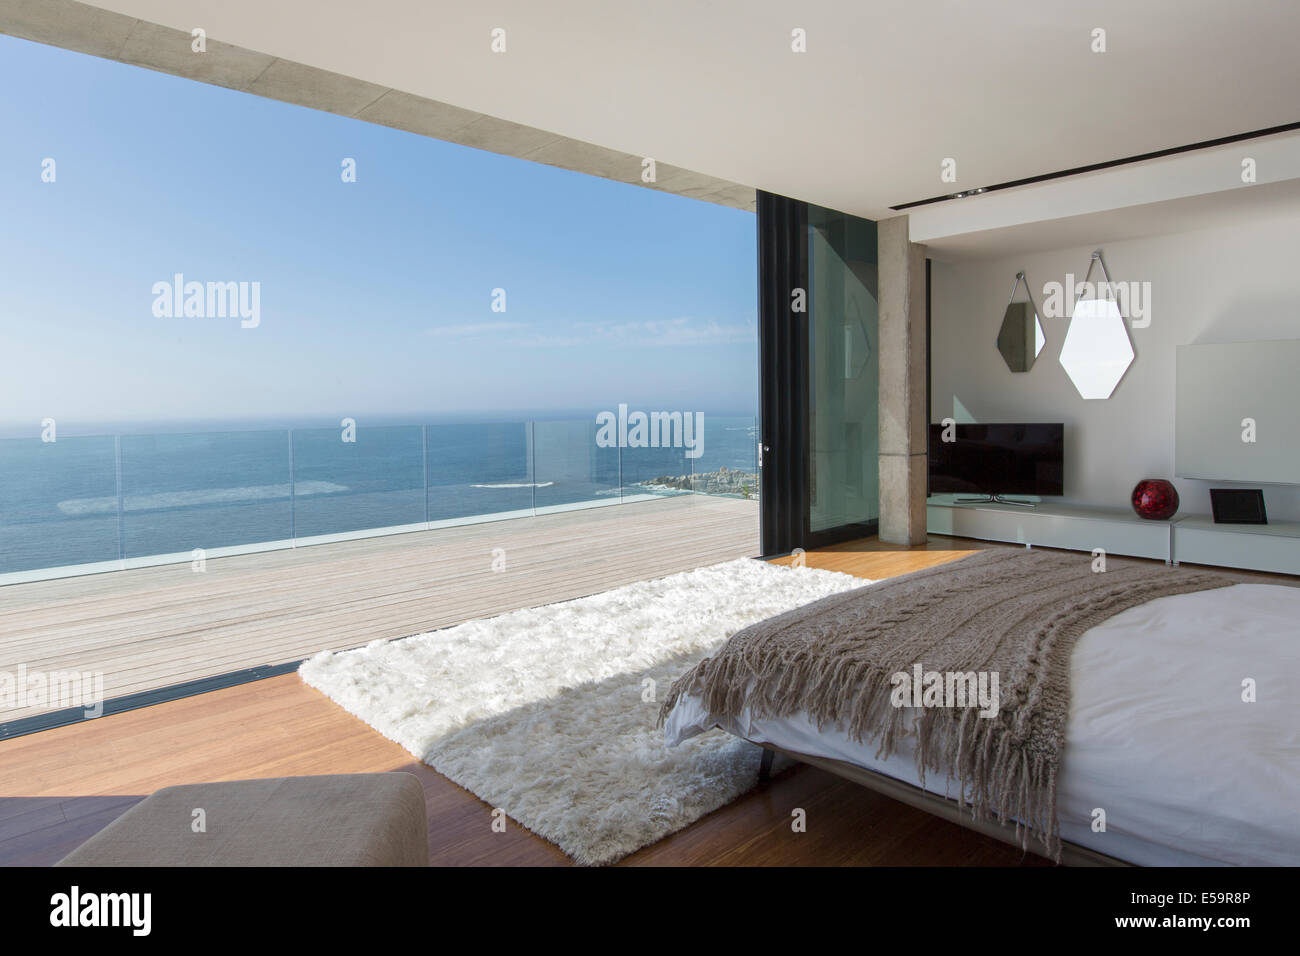 moderne schlafzimmer mit blick auf meer stockfoto bild 72130598 alamy. Black Bedroom Furniture Sets. Home Design Ideas